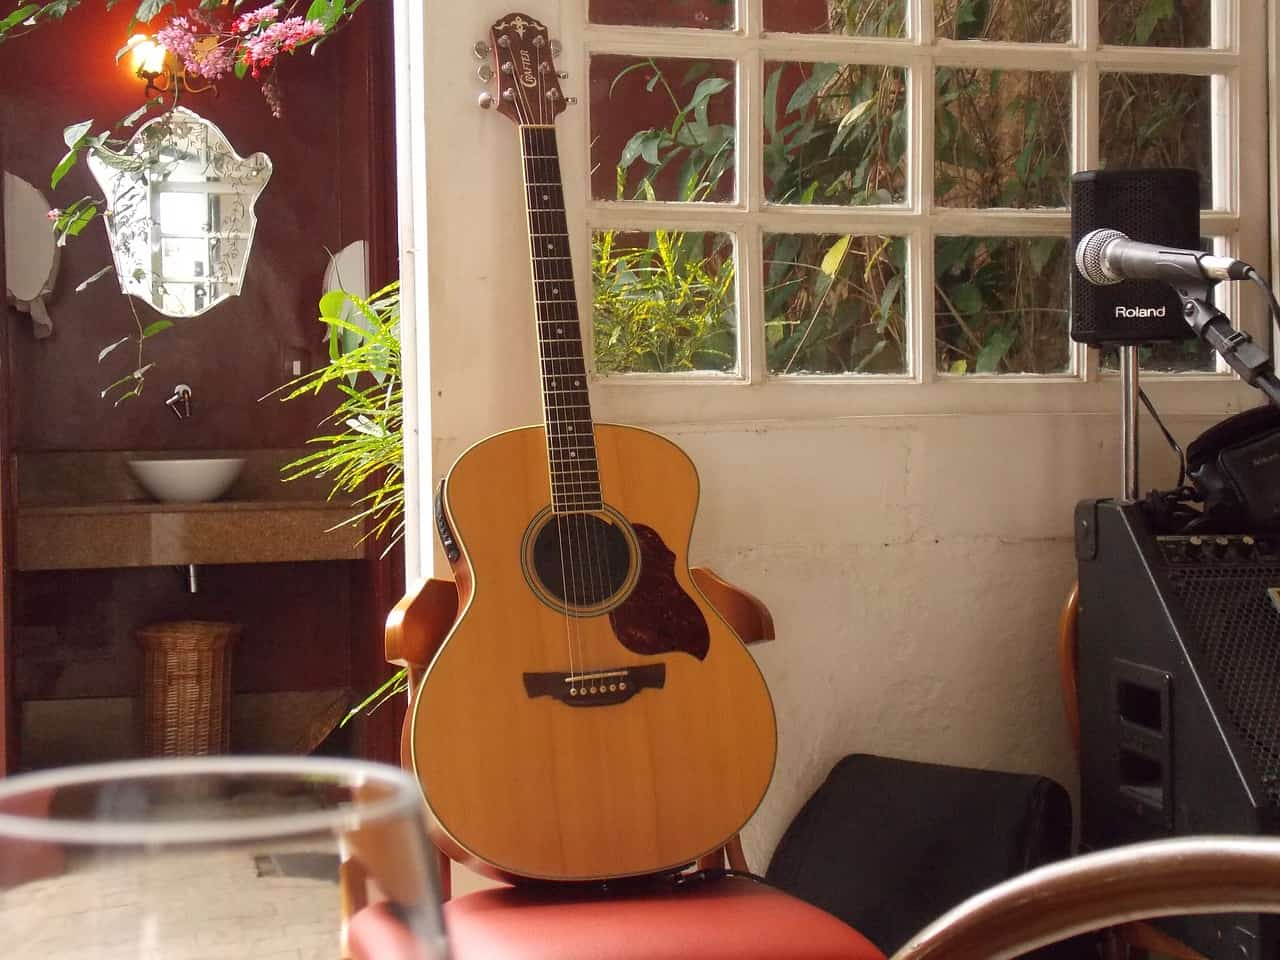 What to look for in an Acoustic Elecrtic